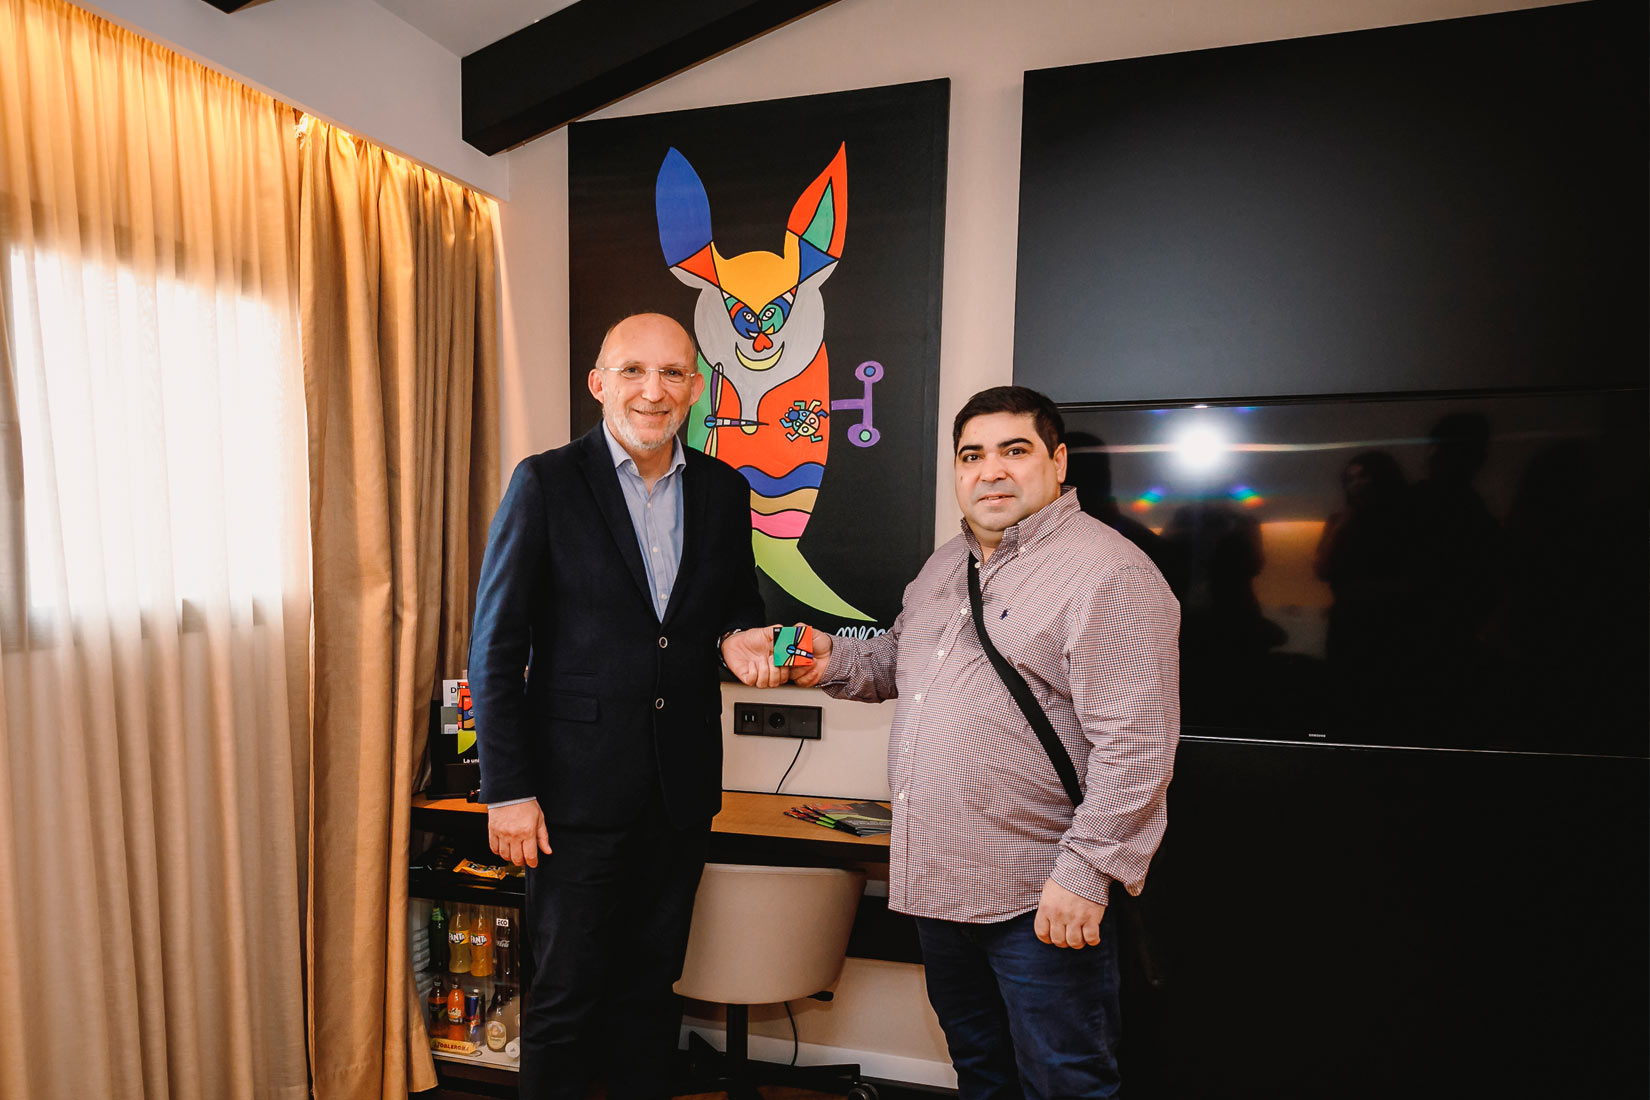 The art of Jose Luis Mesas and the technology of ROBOTBAS come together at the Nakar Hotel